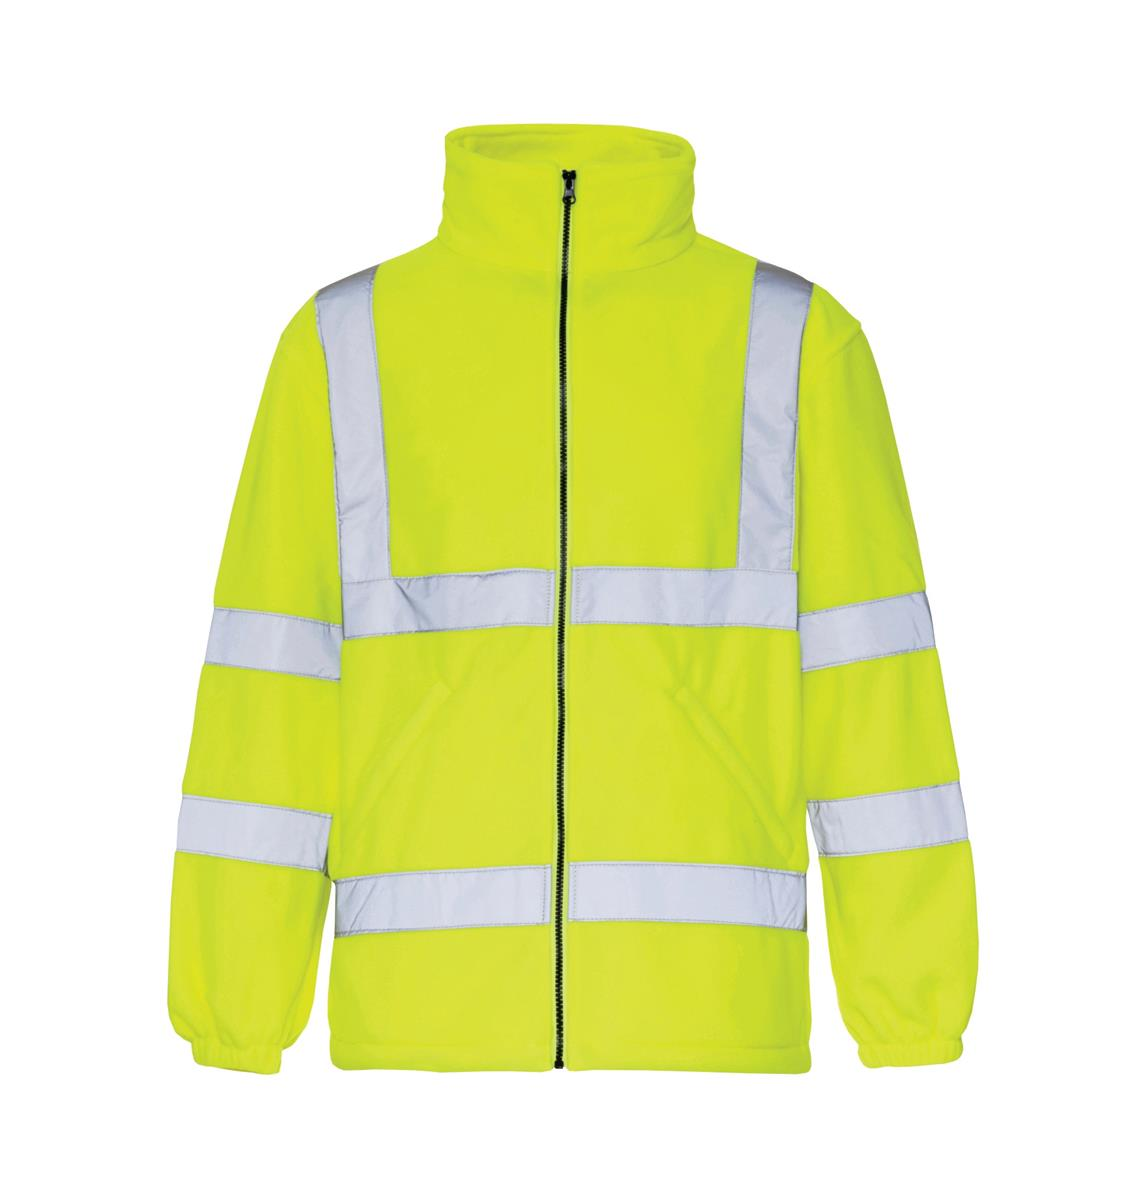 ST High Vis Micro Fleece Jacket Poly with Zip Fastening Large Yellow Ref 38043 *Approx 3 Day Leadtime*